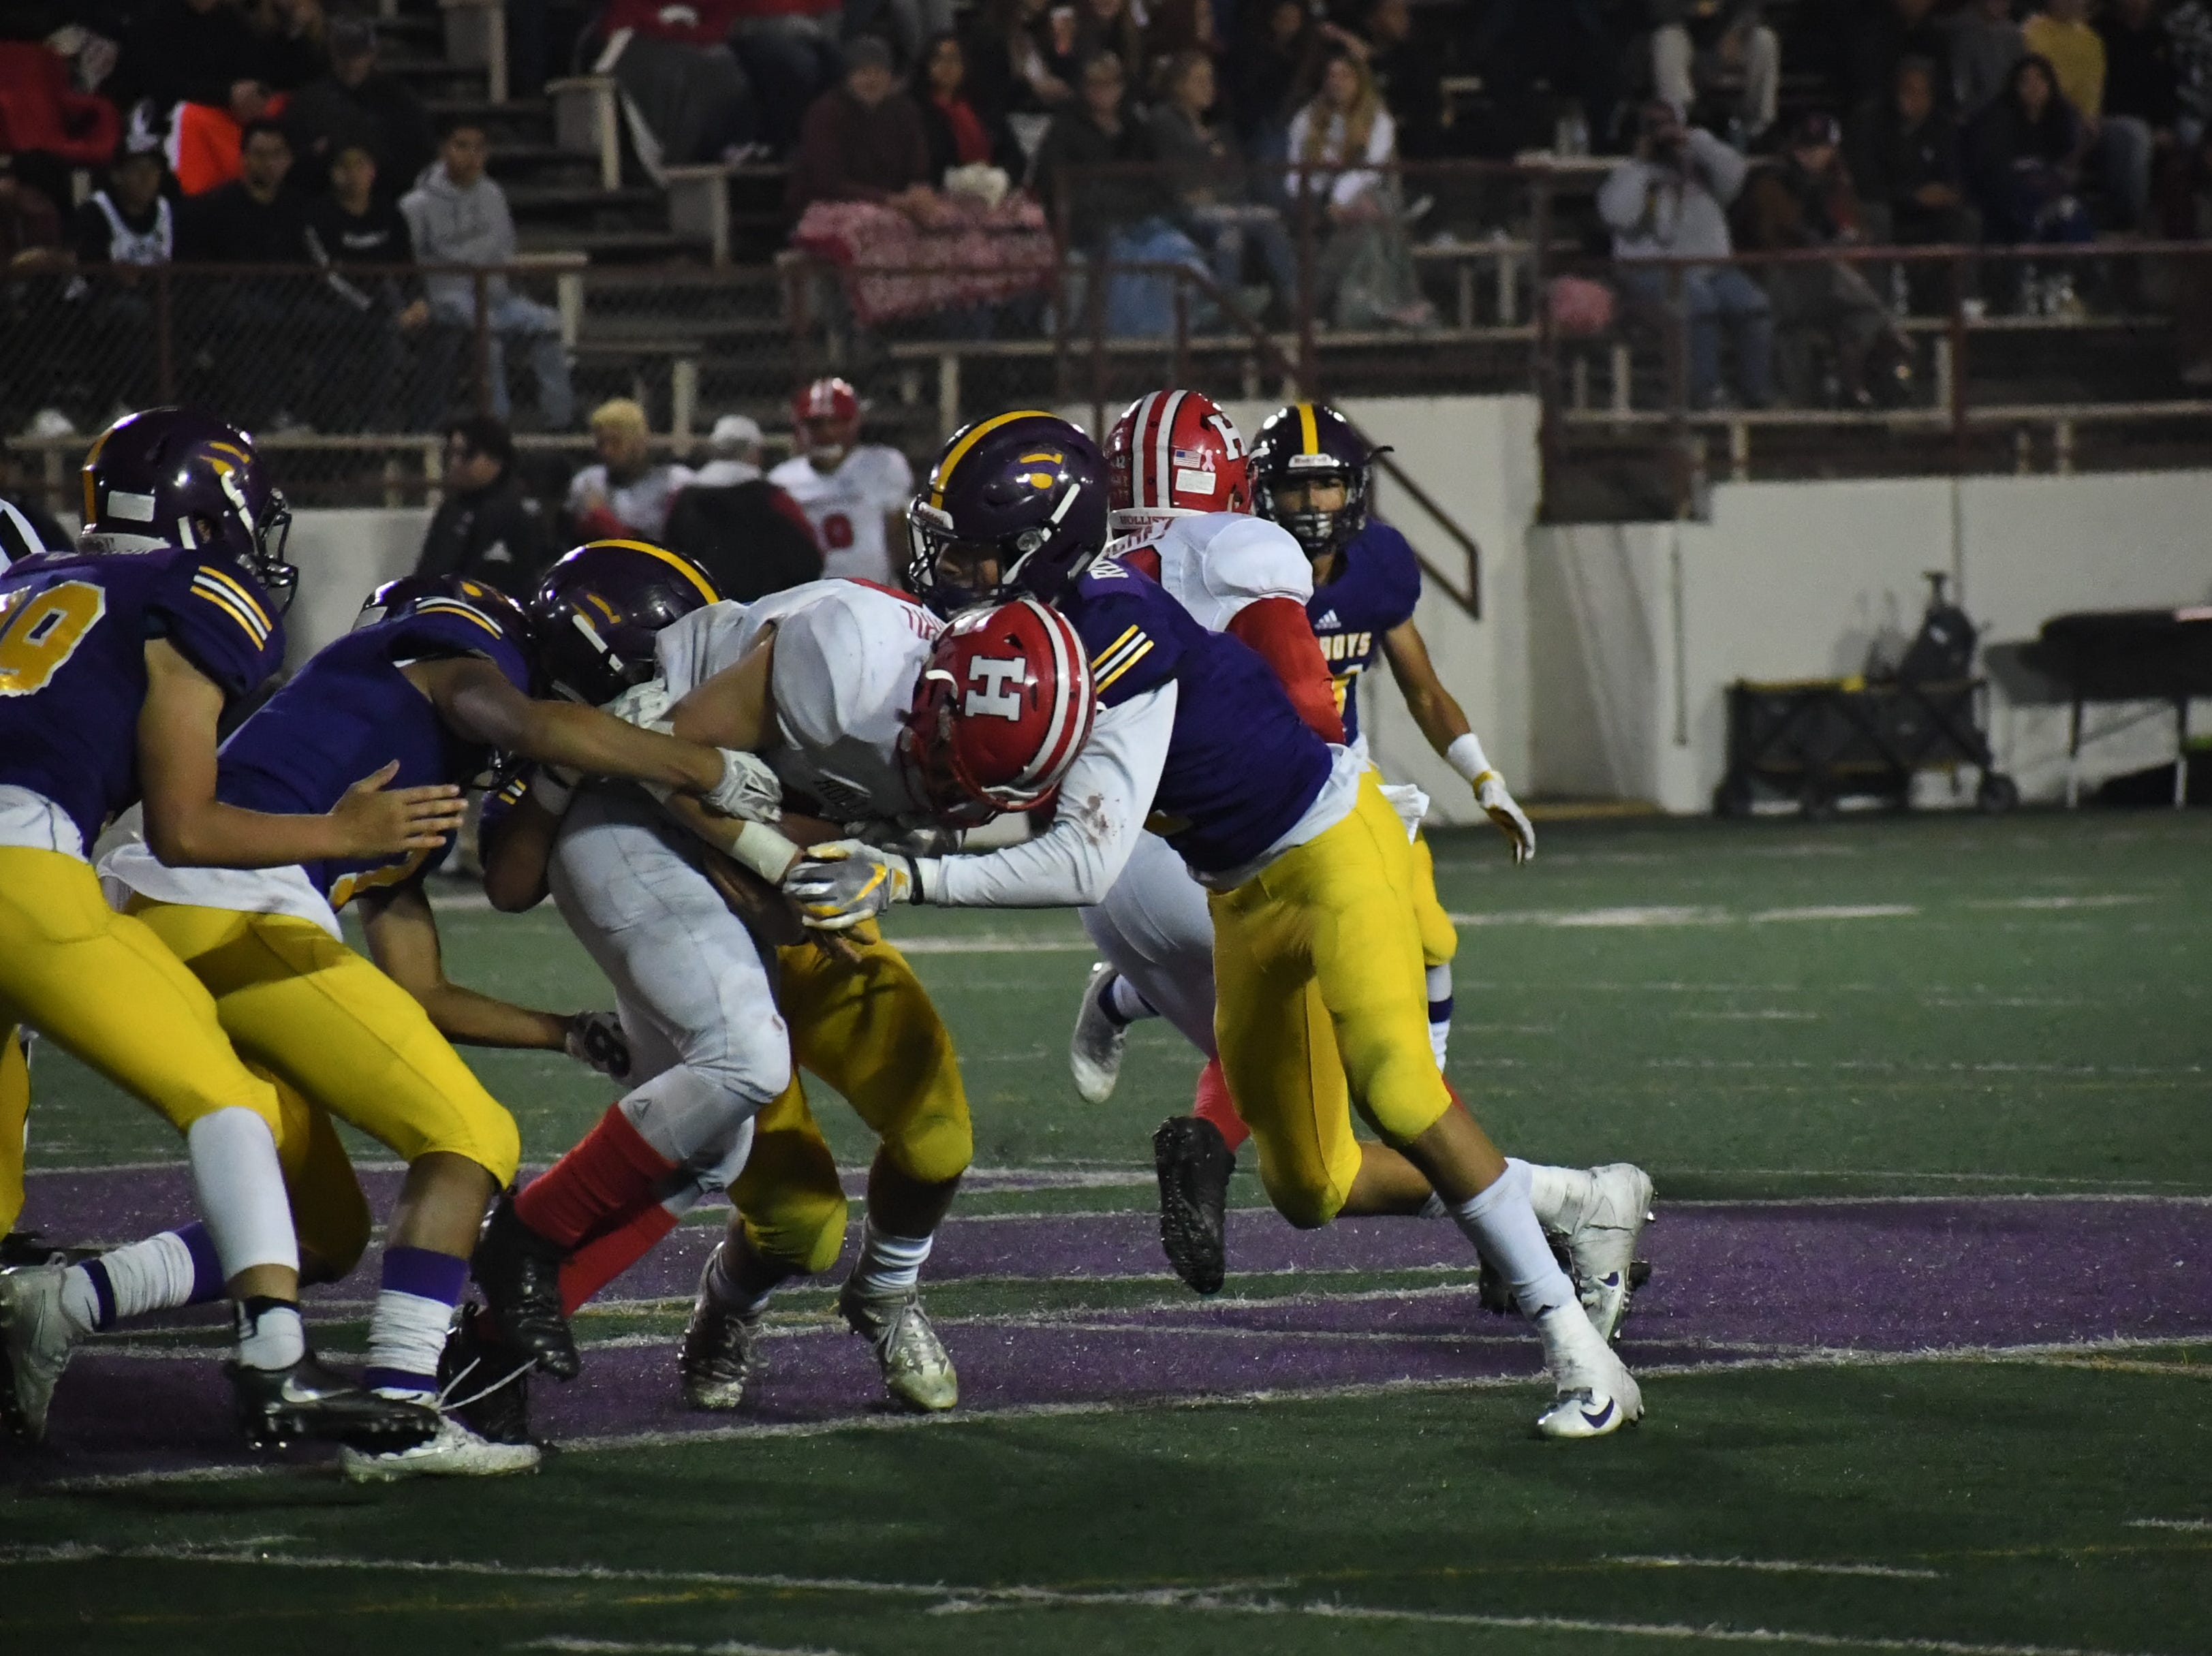 Linebackers Nick Marquez, Joey Moag and safety Zachary Robison (2) wrap up a San Benito running back.